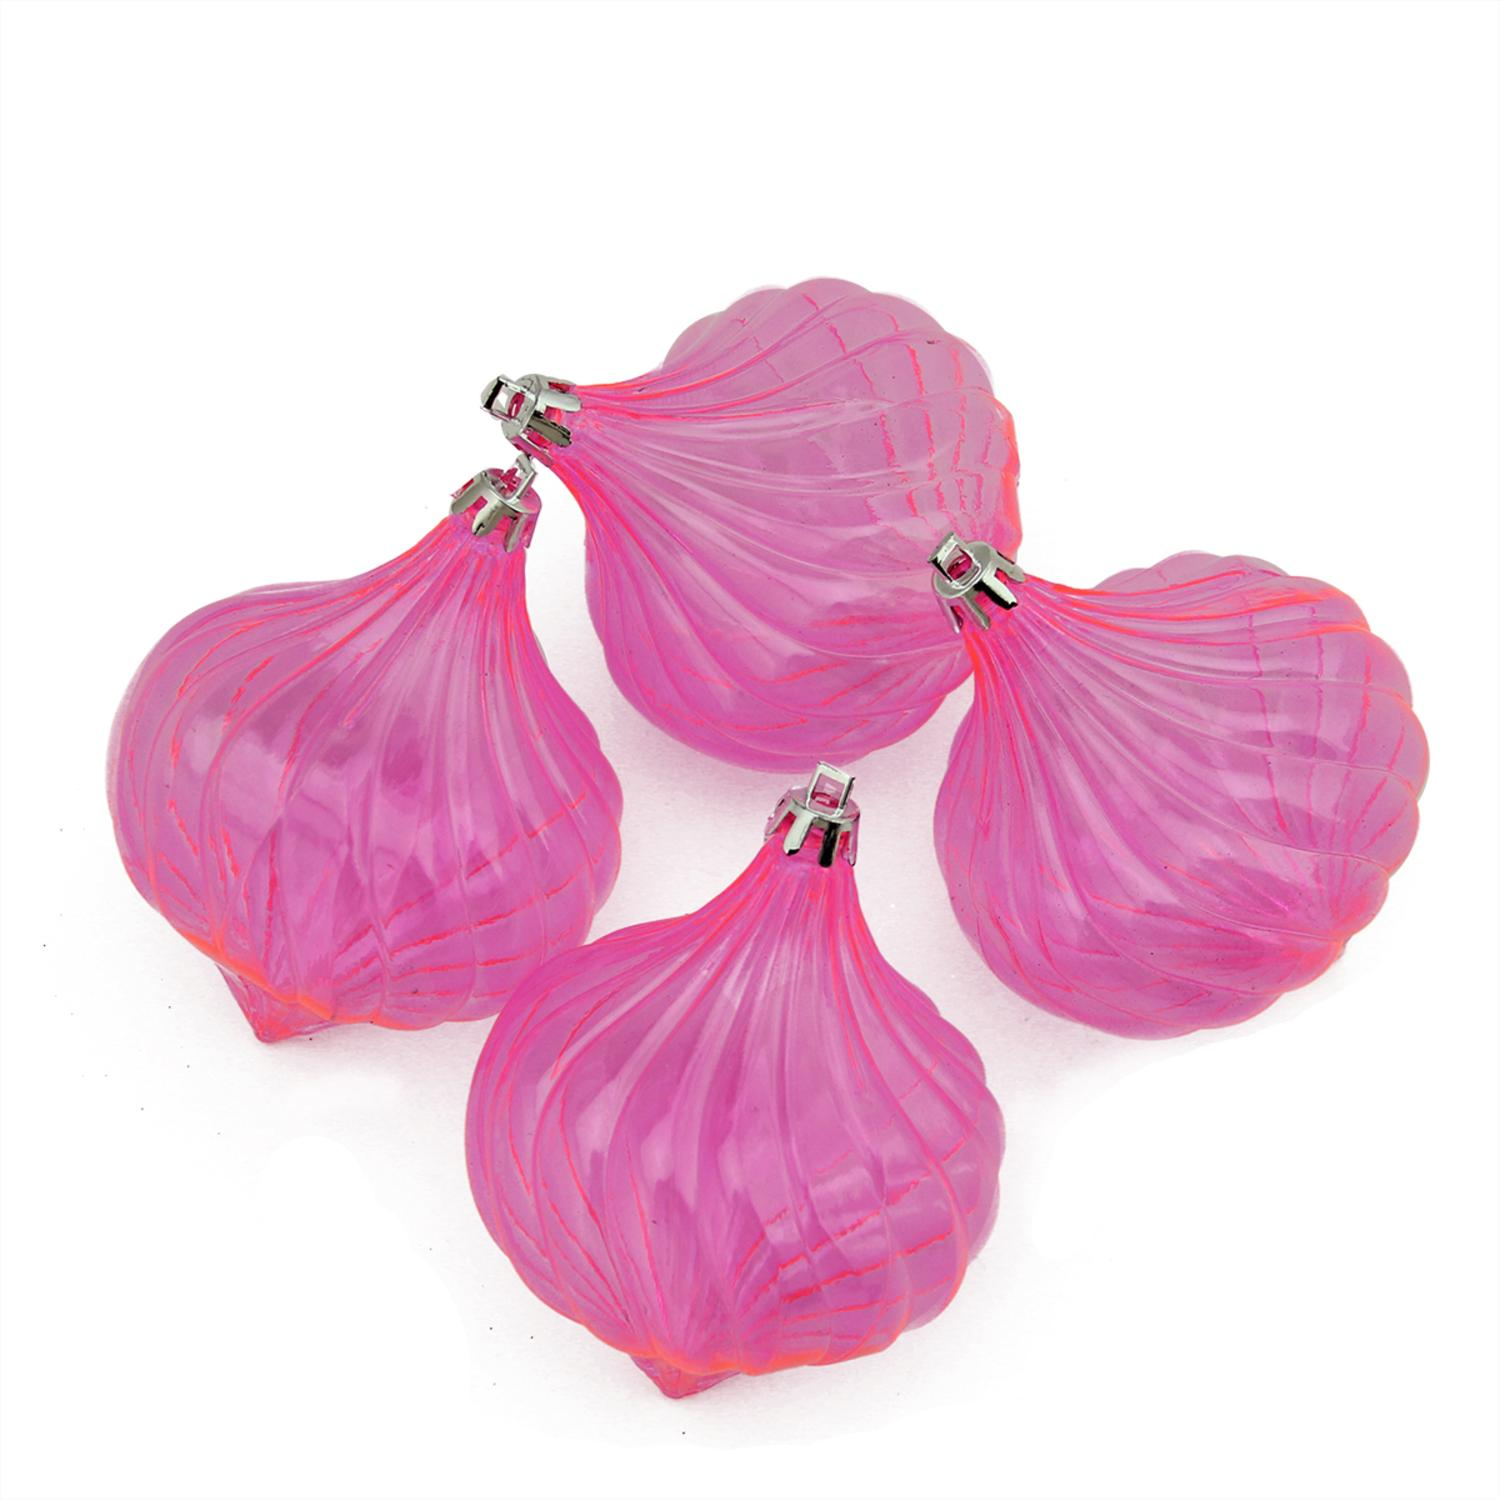 "4ct 4.5"" Pink Transparent Shatterproof Onion Christmas Ornaments"